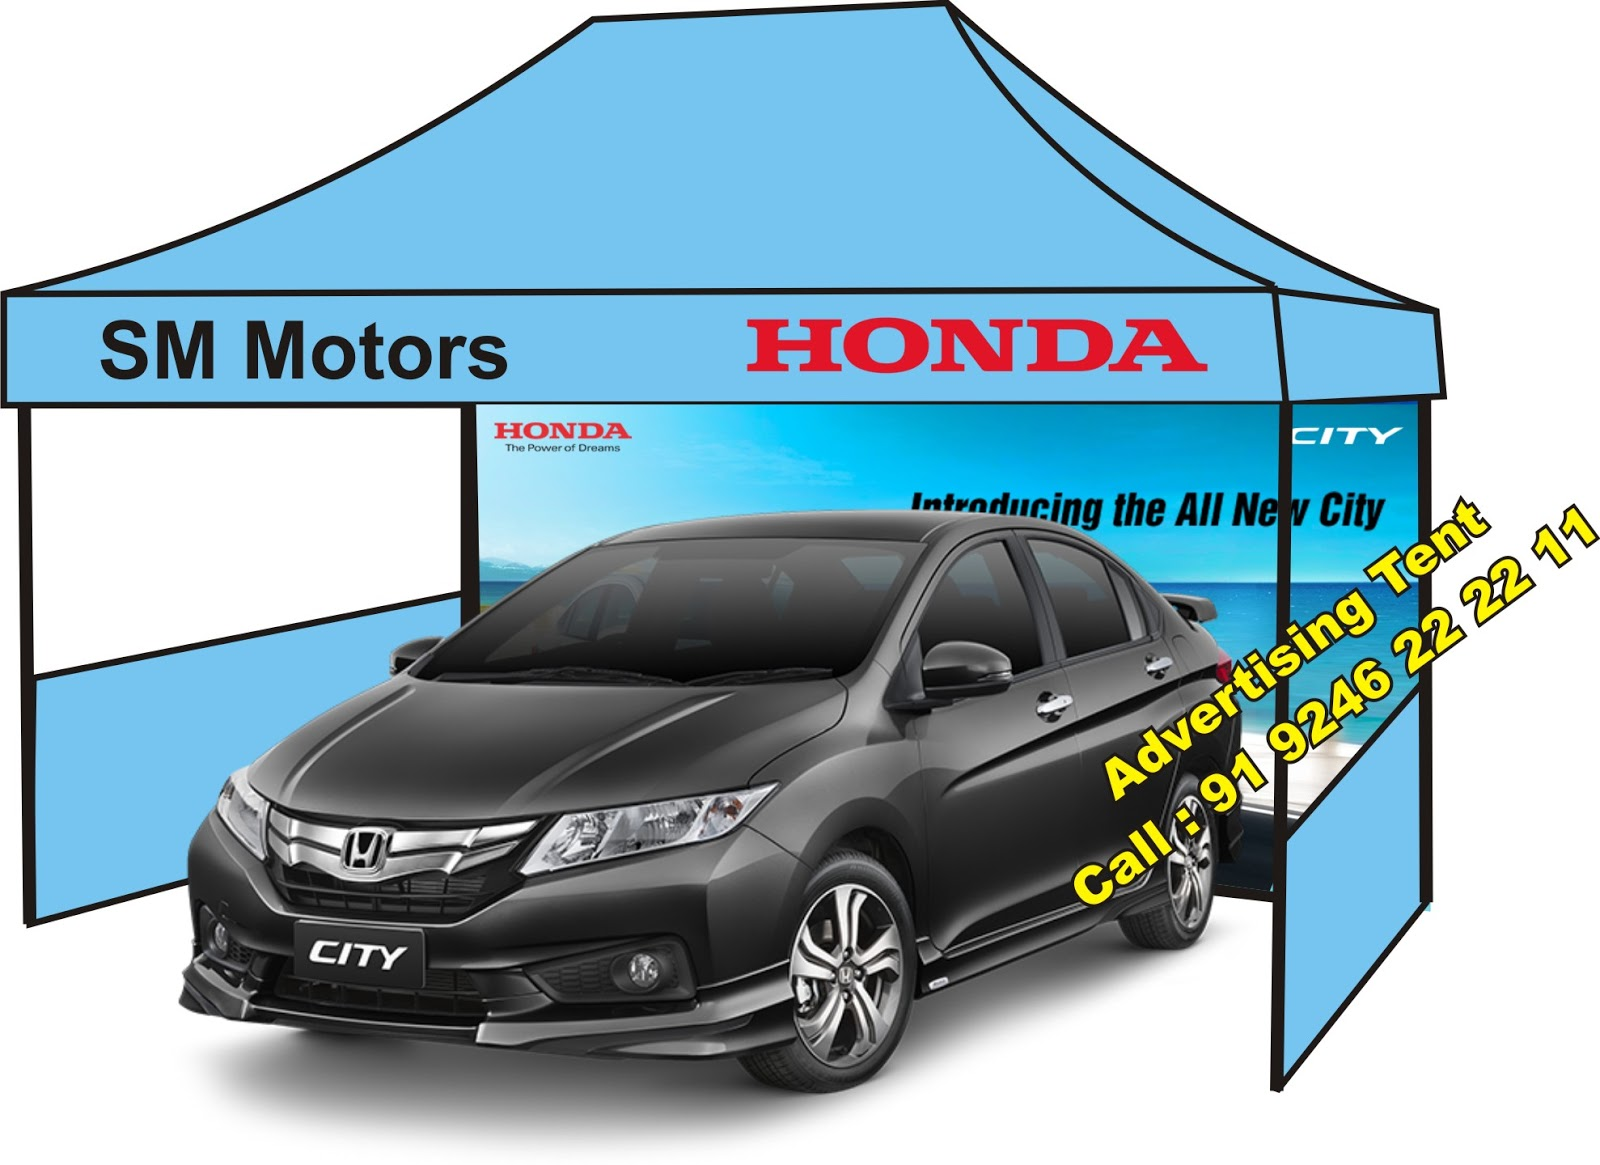 Honda Car Dealers Advertising Products And Marketing Tents Suppliers In India At Low Price Call 91 9246372692 9246222211 Web Hitechpublicity